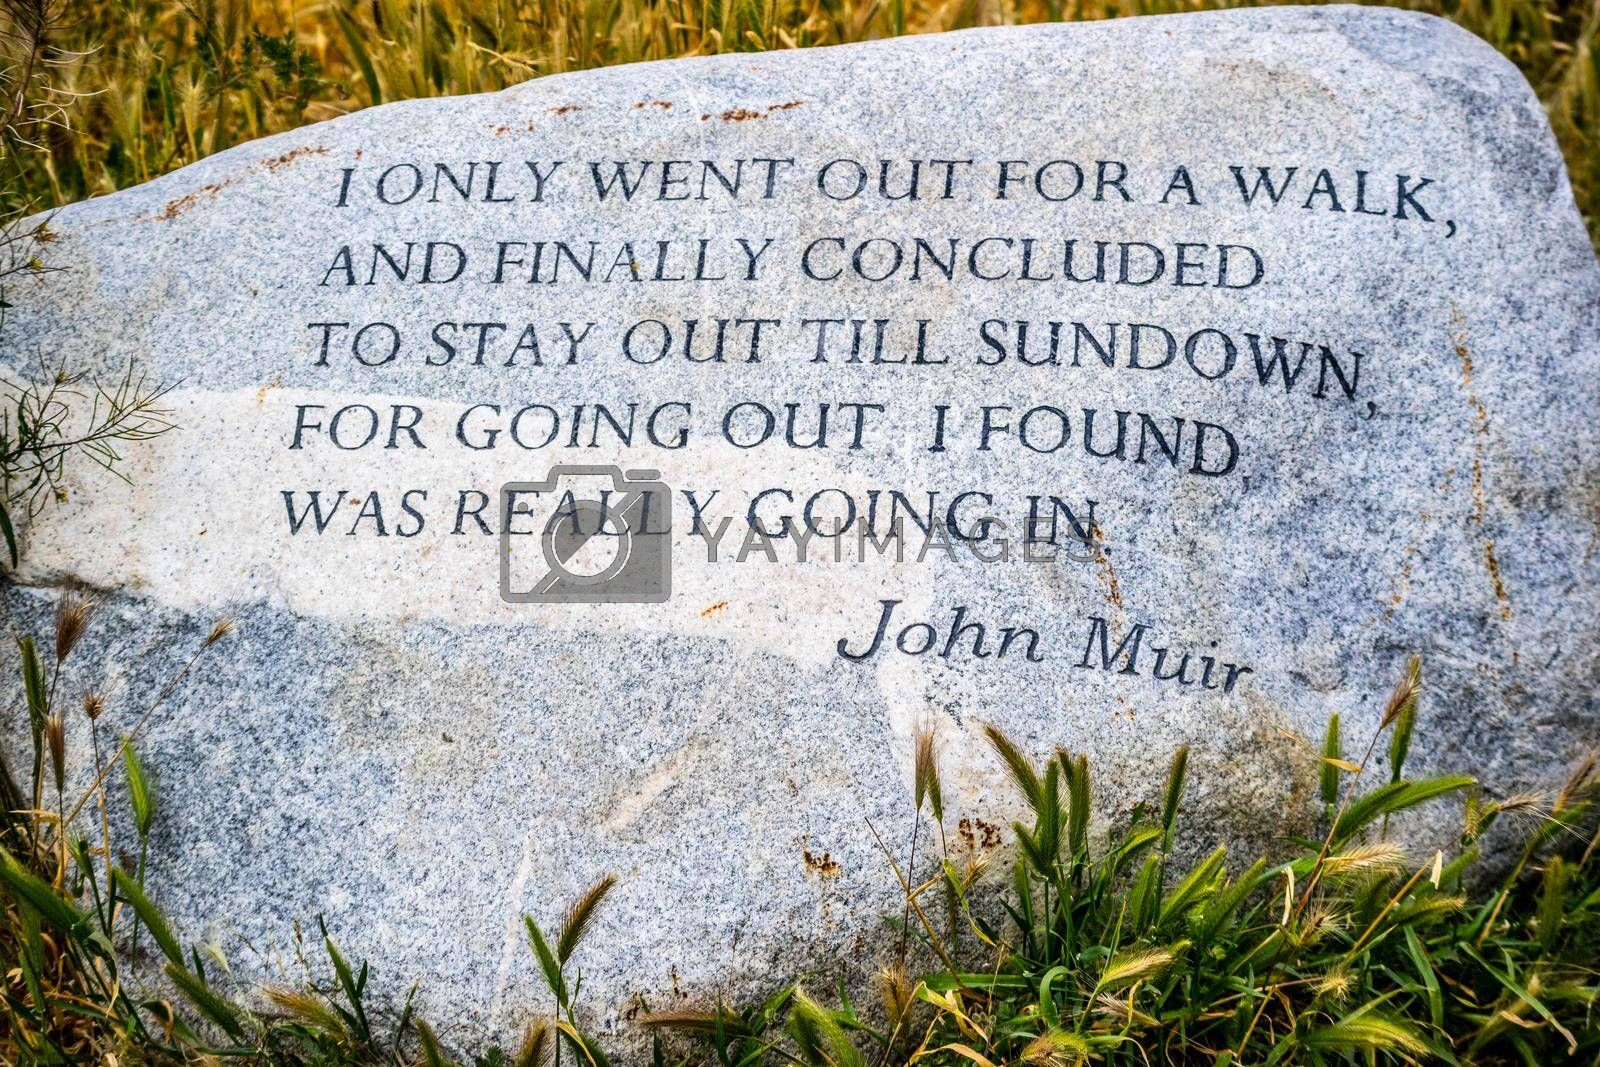 Royalty free image of Palm Spring, CA, USA - April 9, 2017: A John Muir headstone quote marker by cherialguire